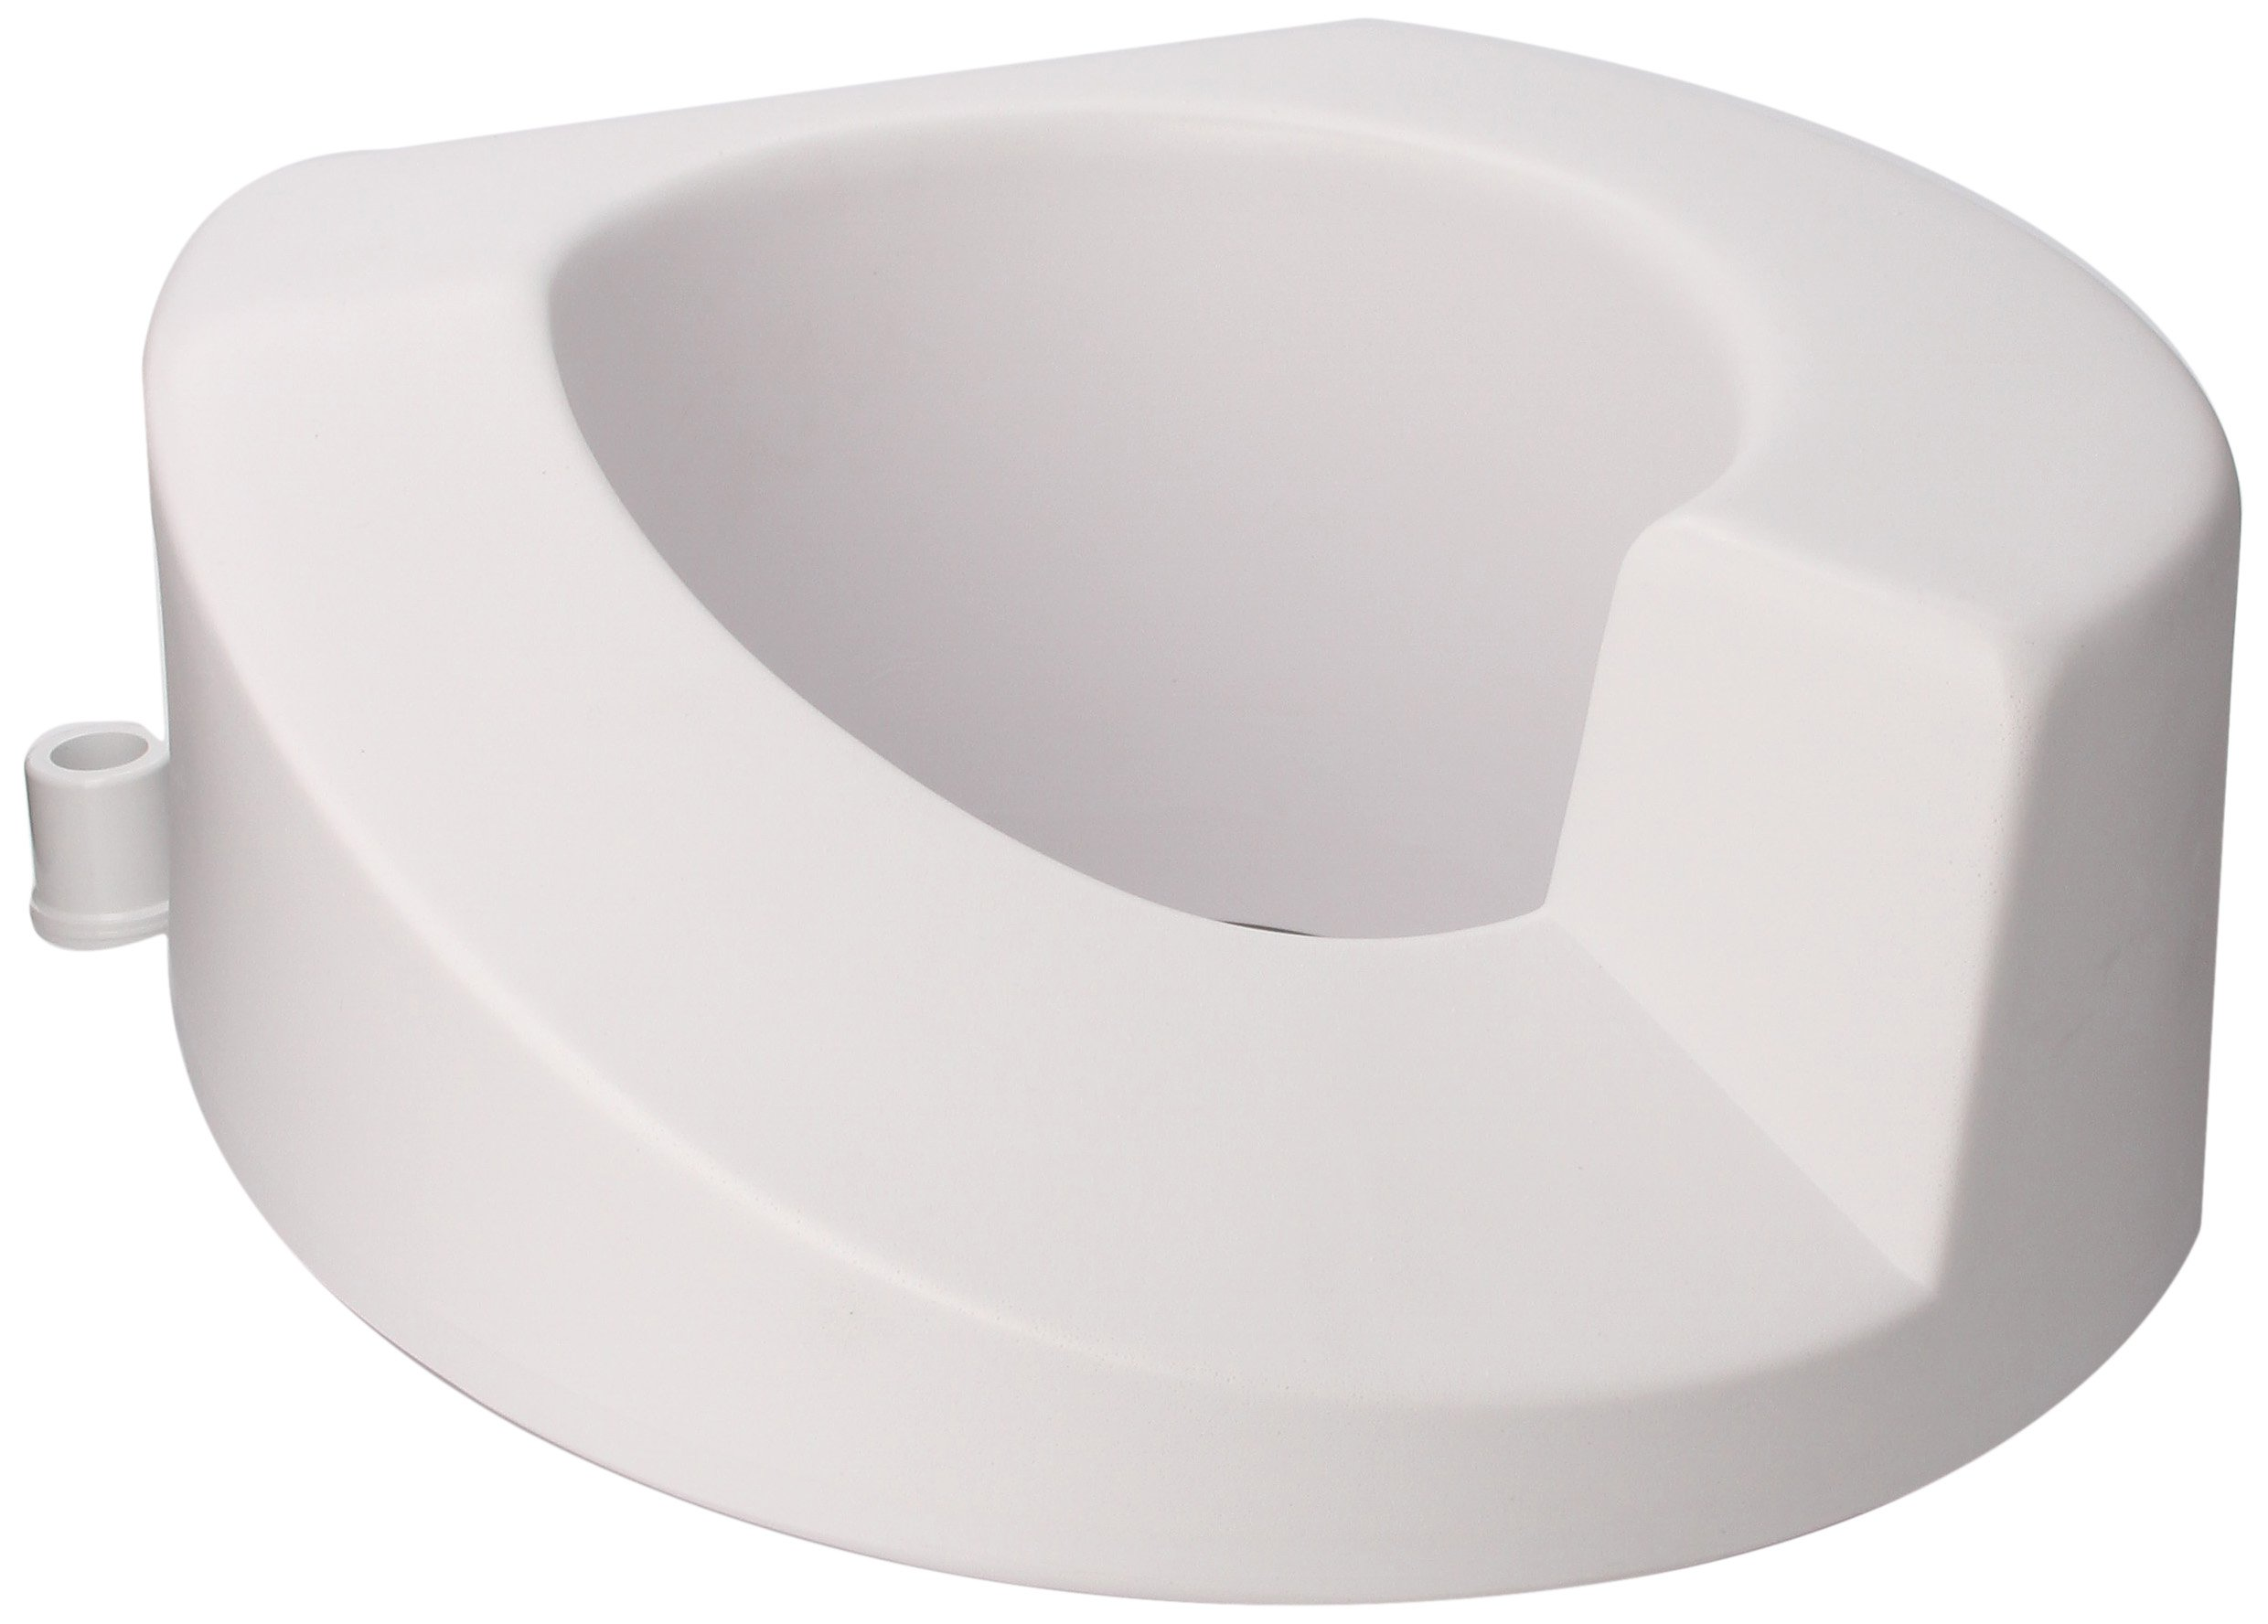 Ableware 725921001 Right Elongated Elevated Toilet Seat